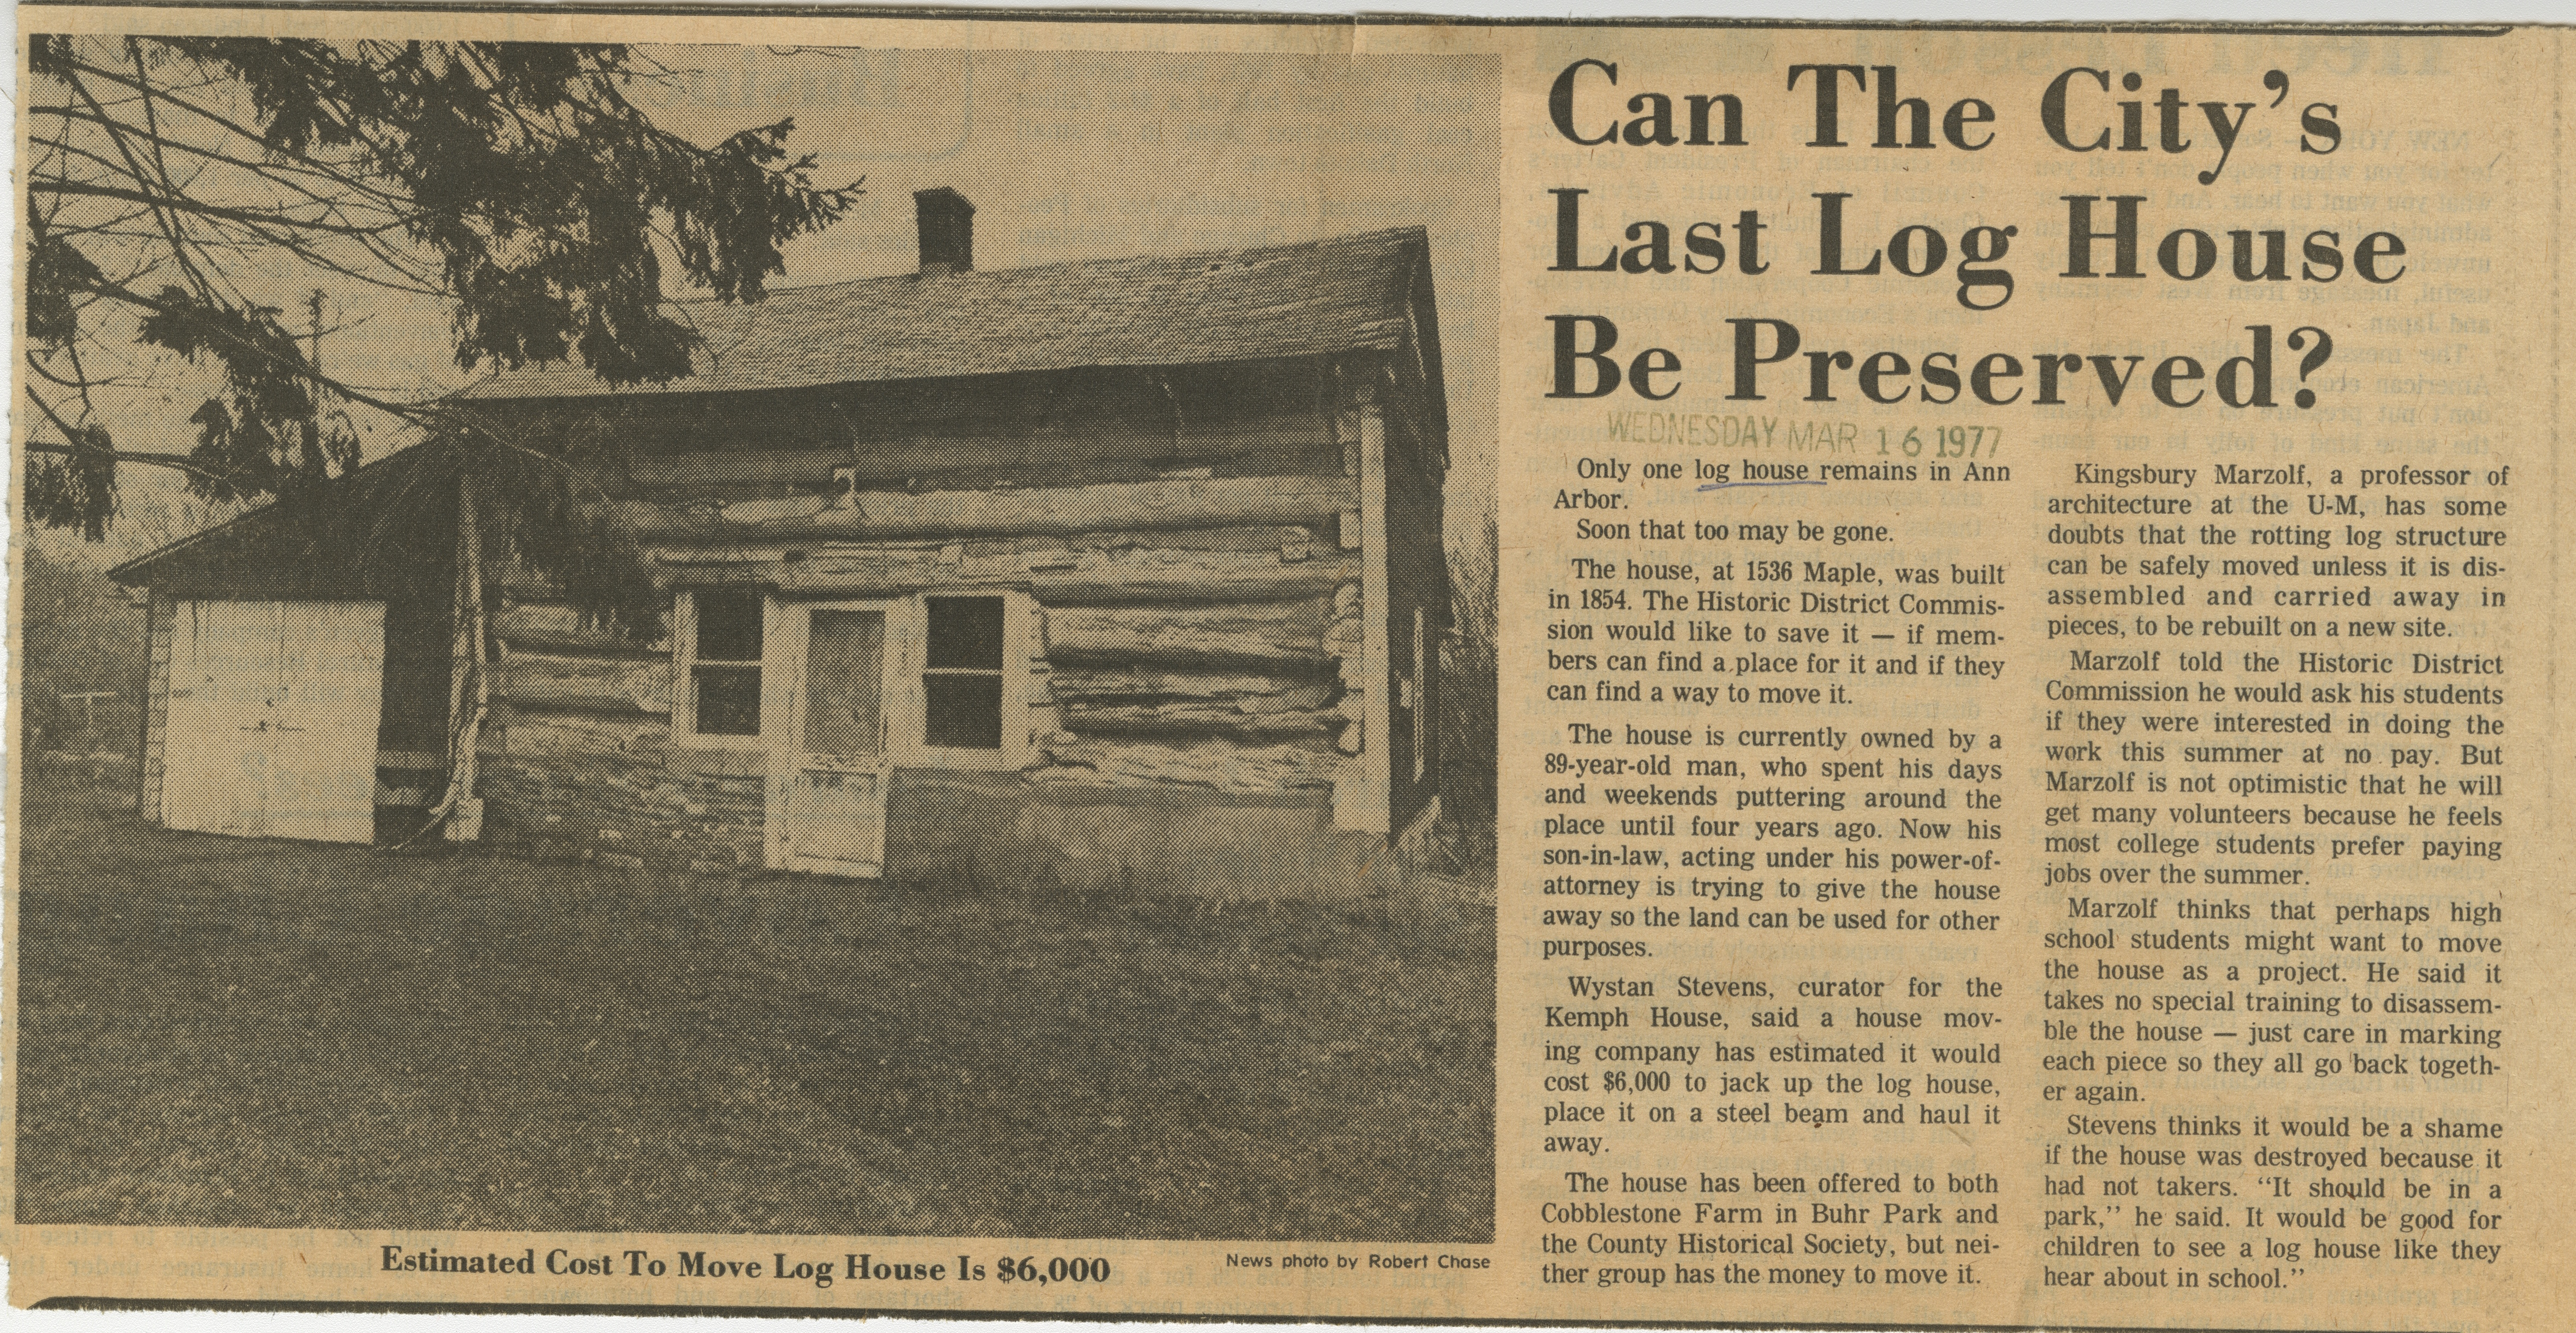 Can The City's Last Log House Be Preserved? image